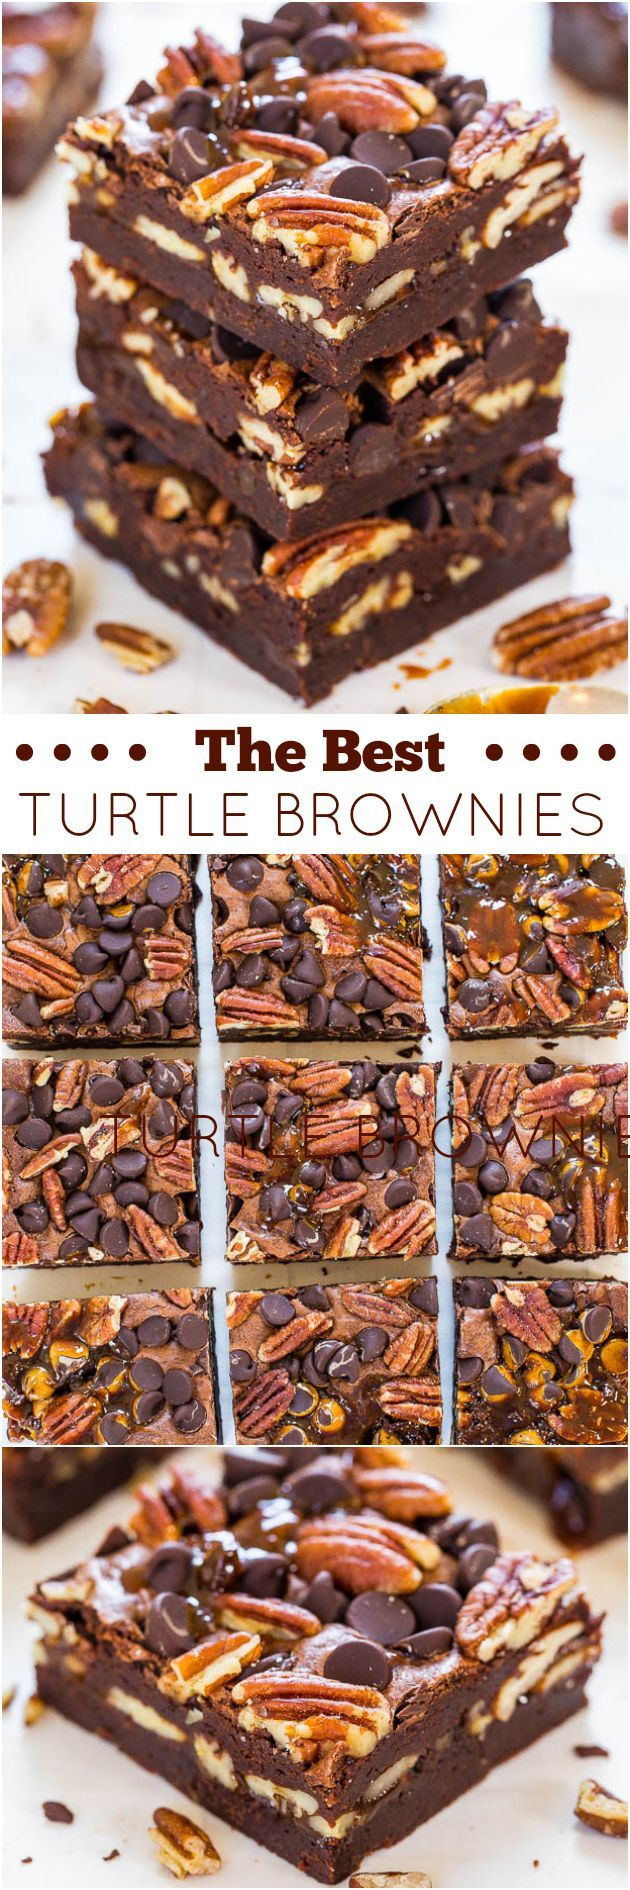 The Best Turtle Brownies - Super fudgy and loaded with chocolate. pecans and caramel! So.crazy.good!!!